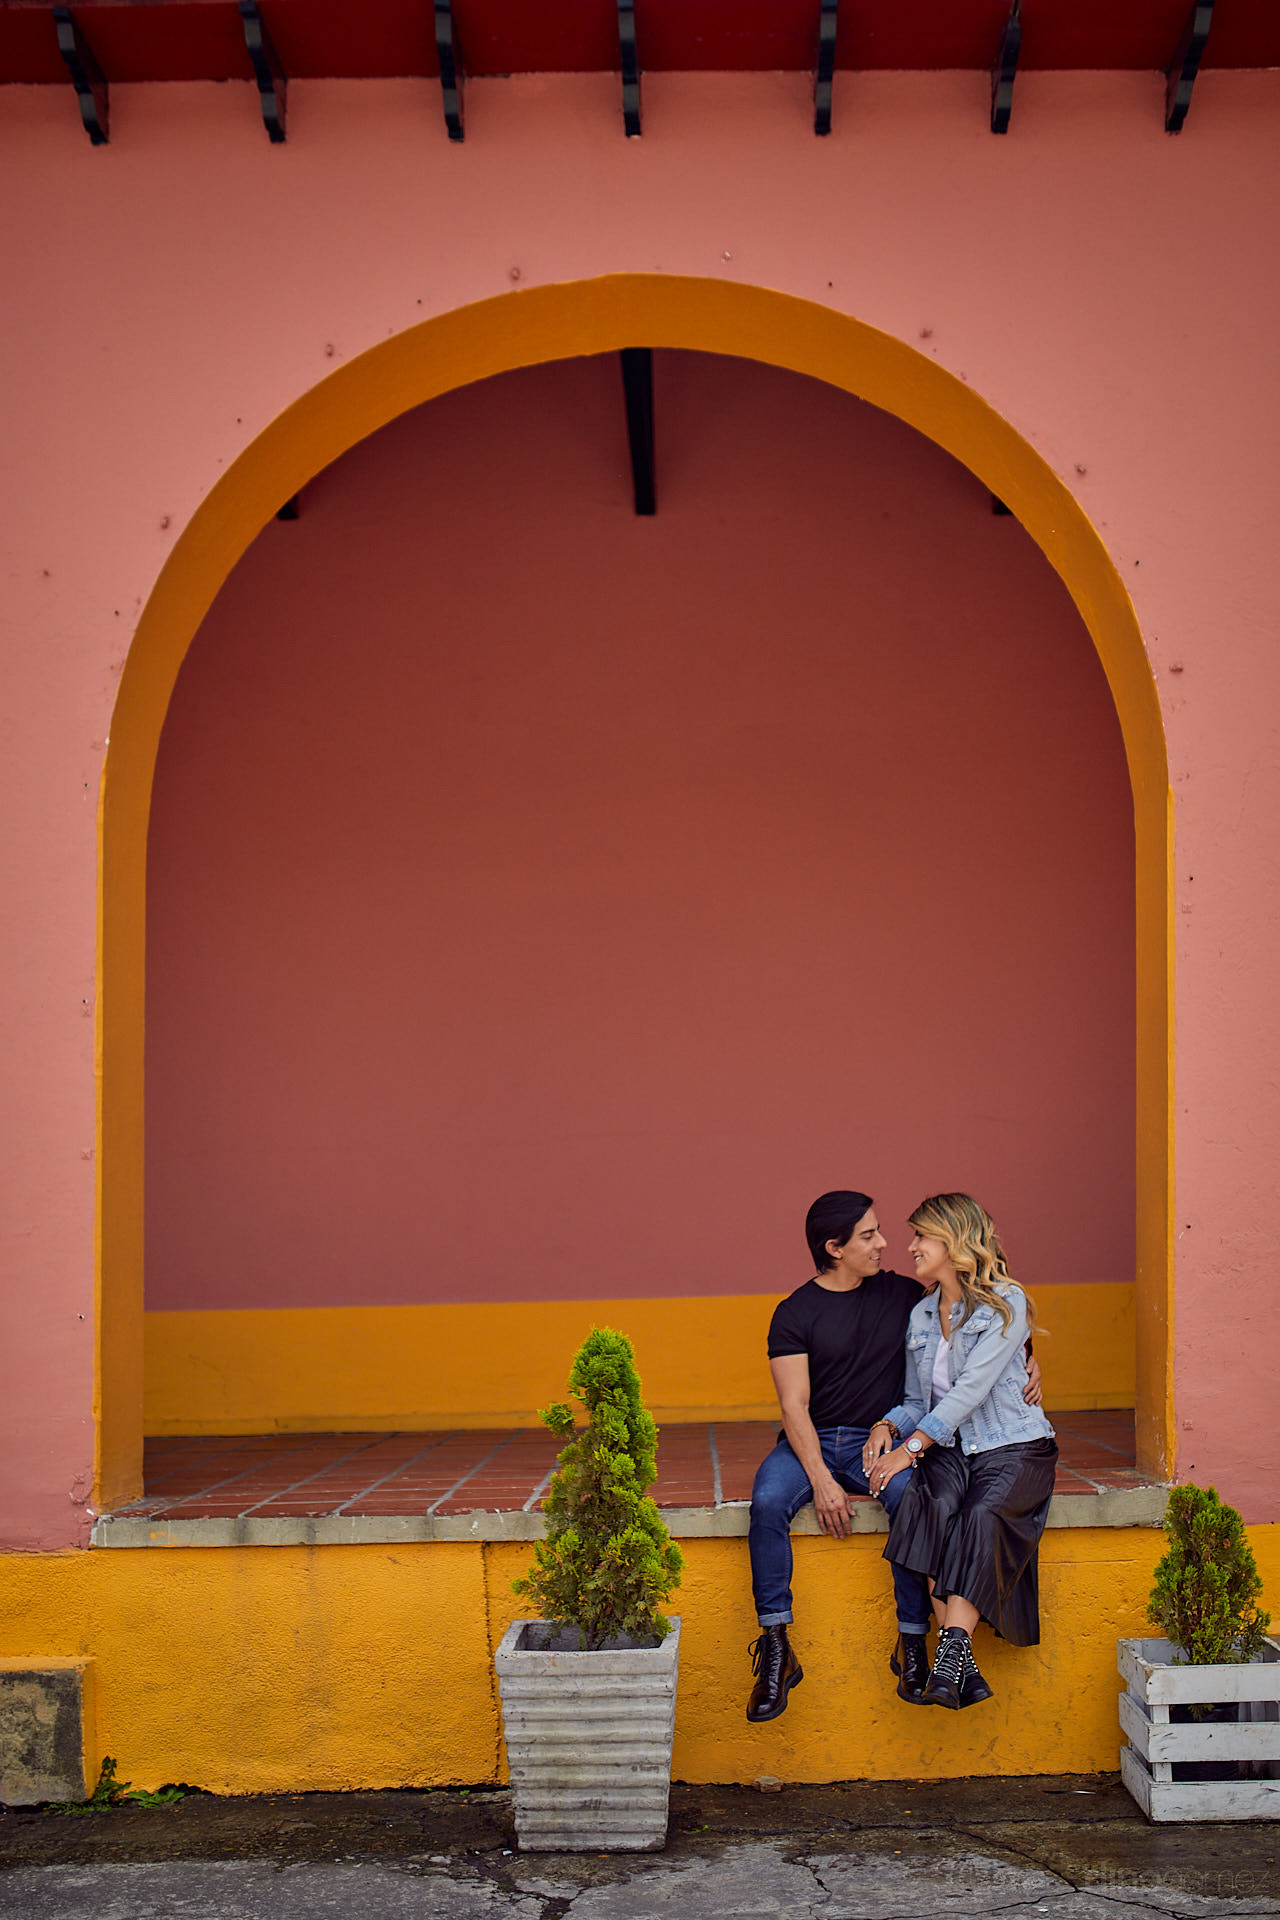 Dino Is A San Miguel De Allende Based Photographer. He Enjoys Photographing Weddings, Engagement Sessions, Fashion And Architecture Projects.